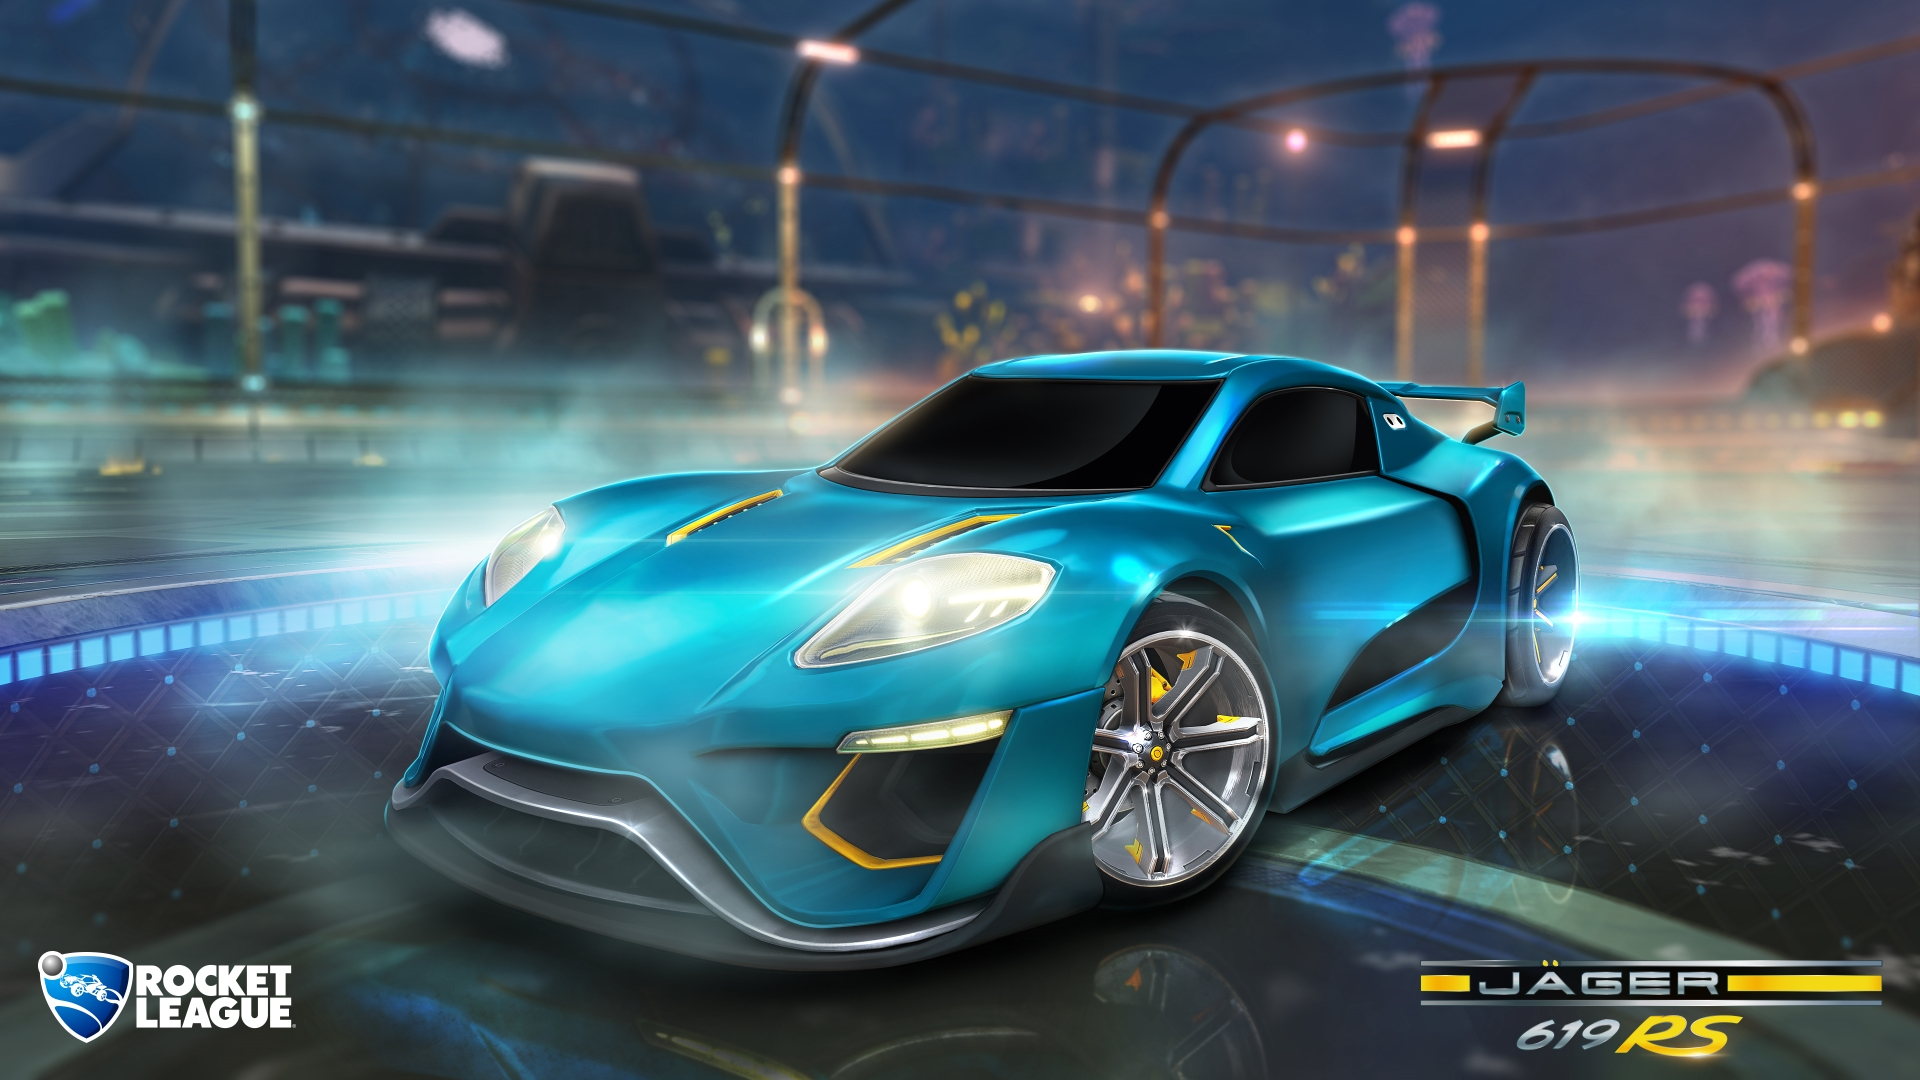 "11b5823397d Search Results for ""New Battle Car Jager 619 Rs Rocketleague ..."